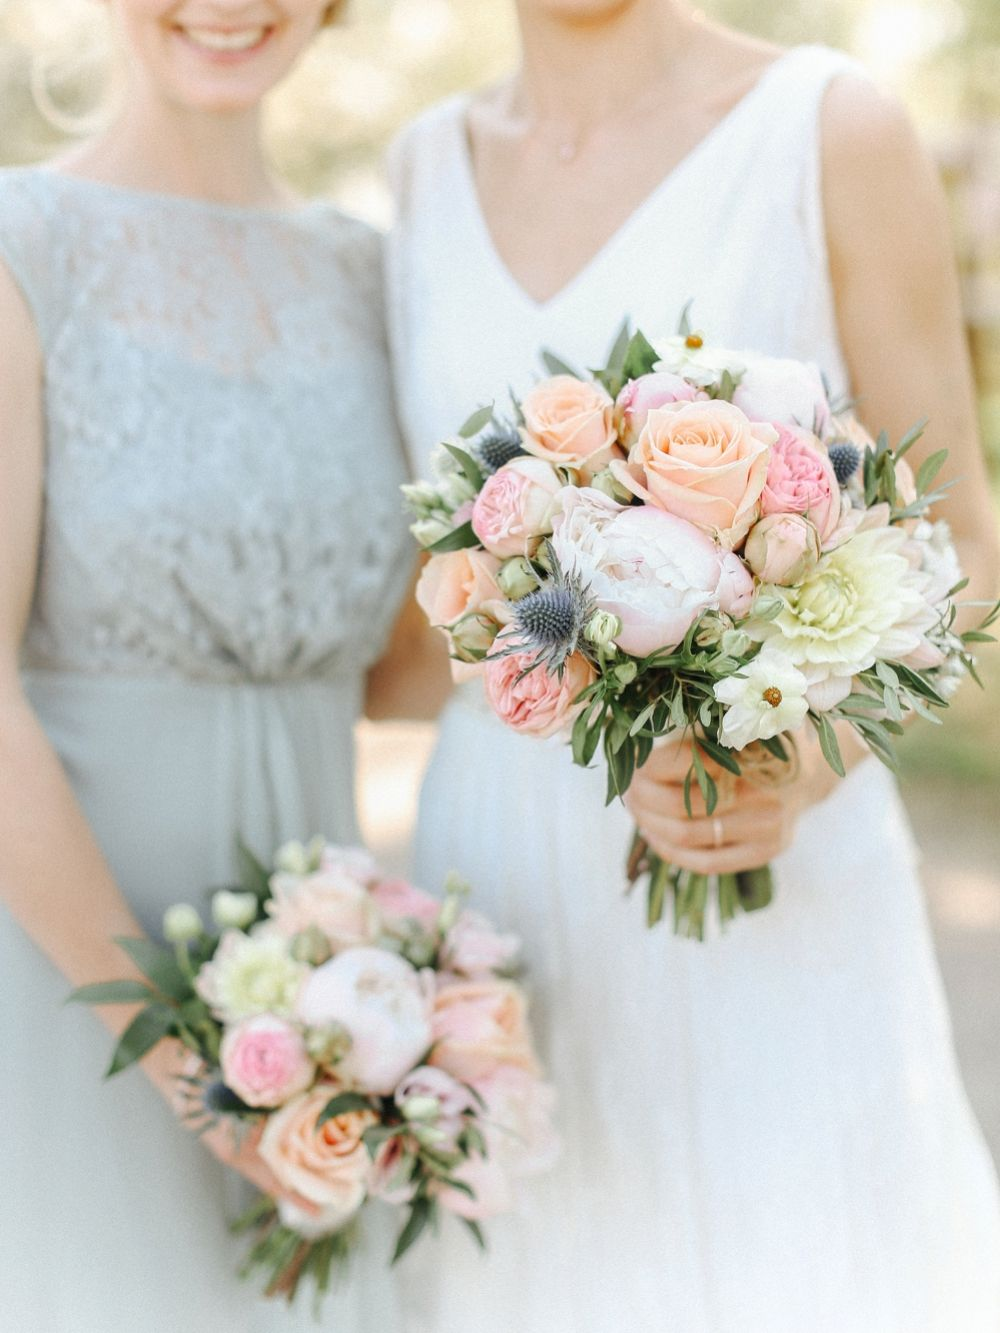 Homemade Country Wedding With Pretty Pastels By Belle And Beau